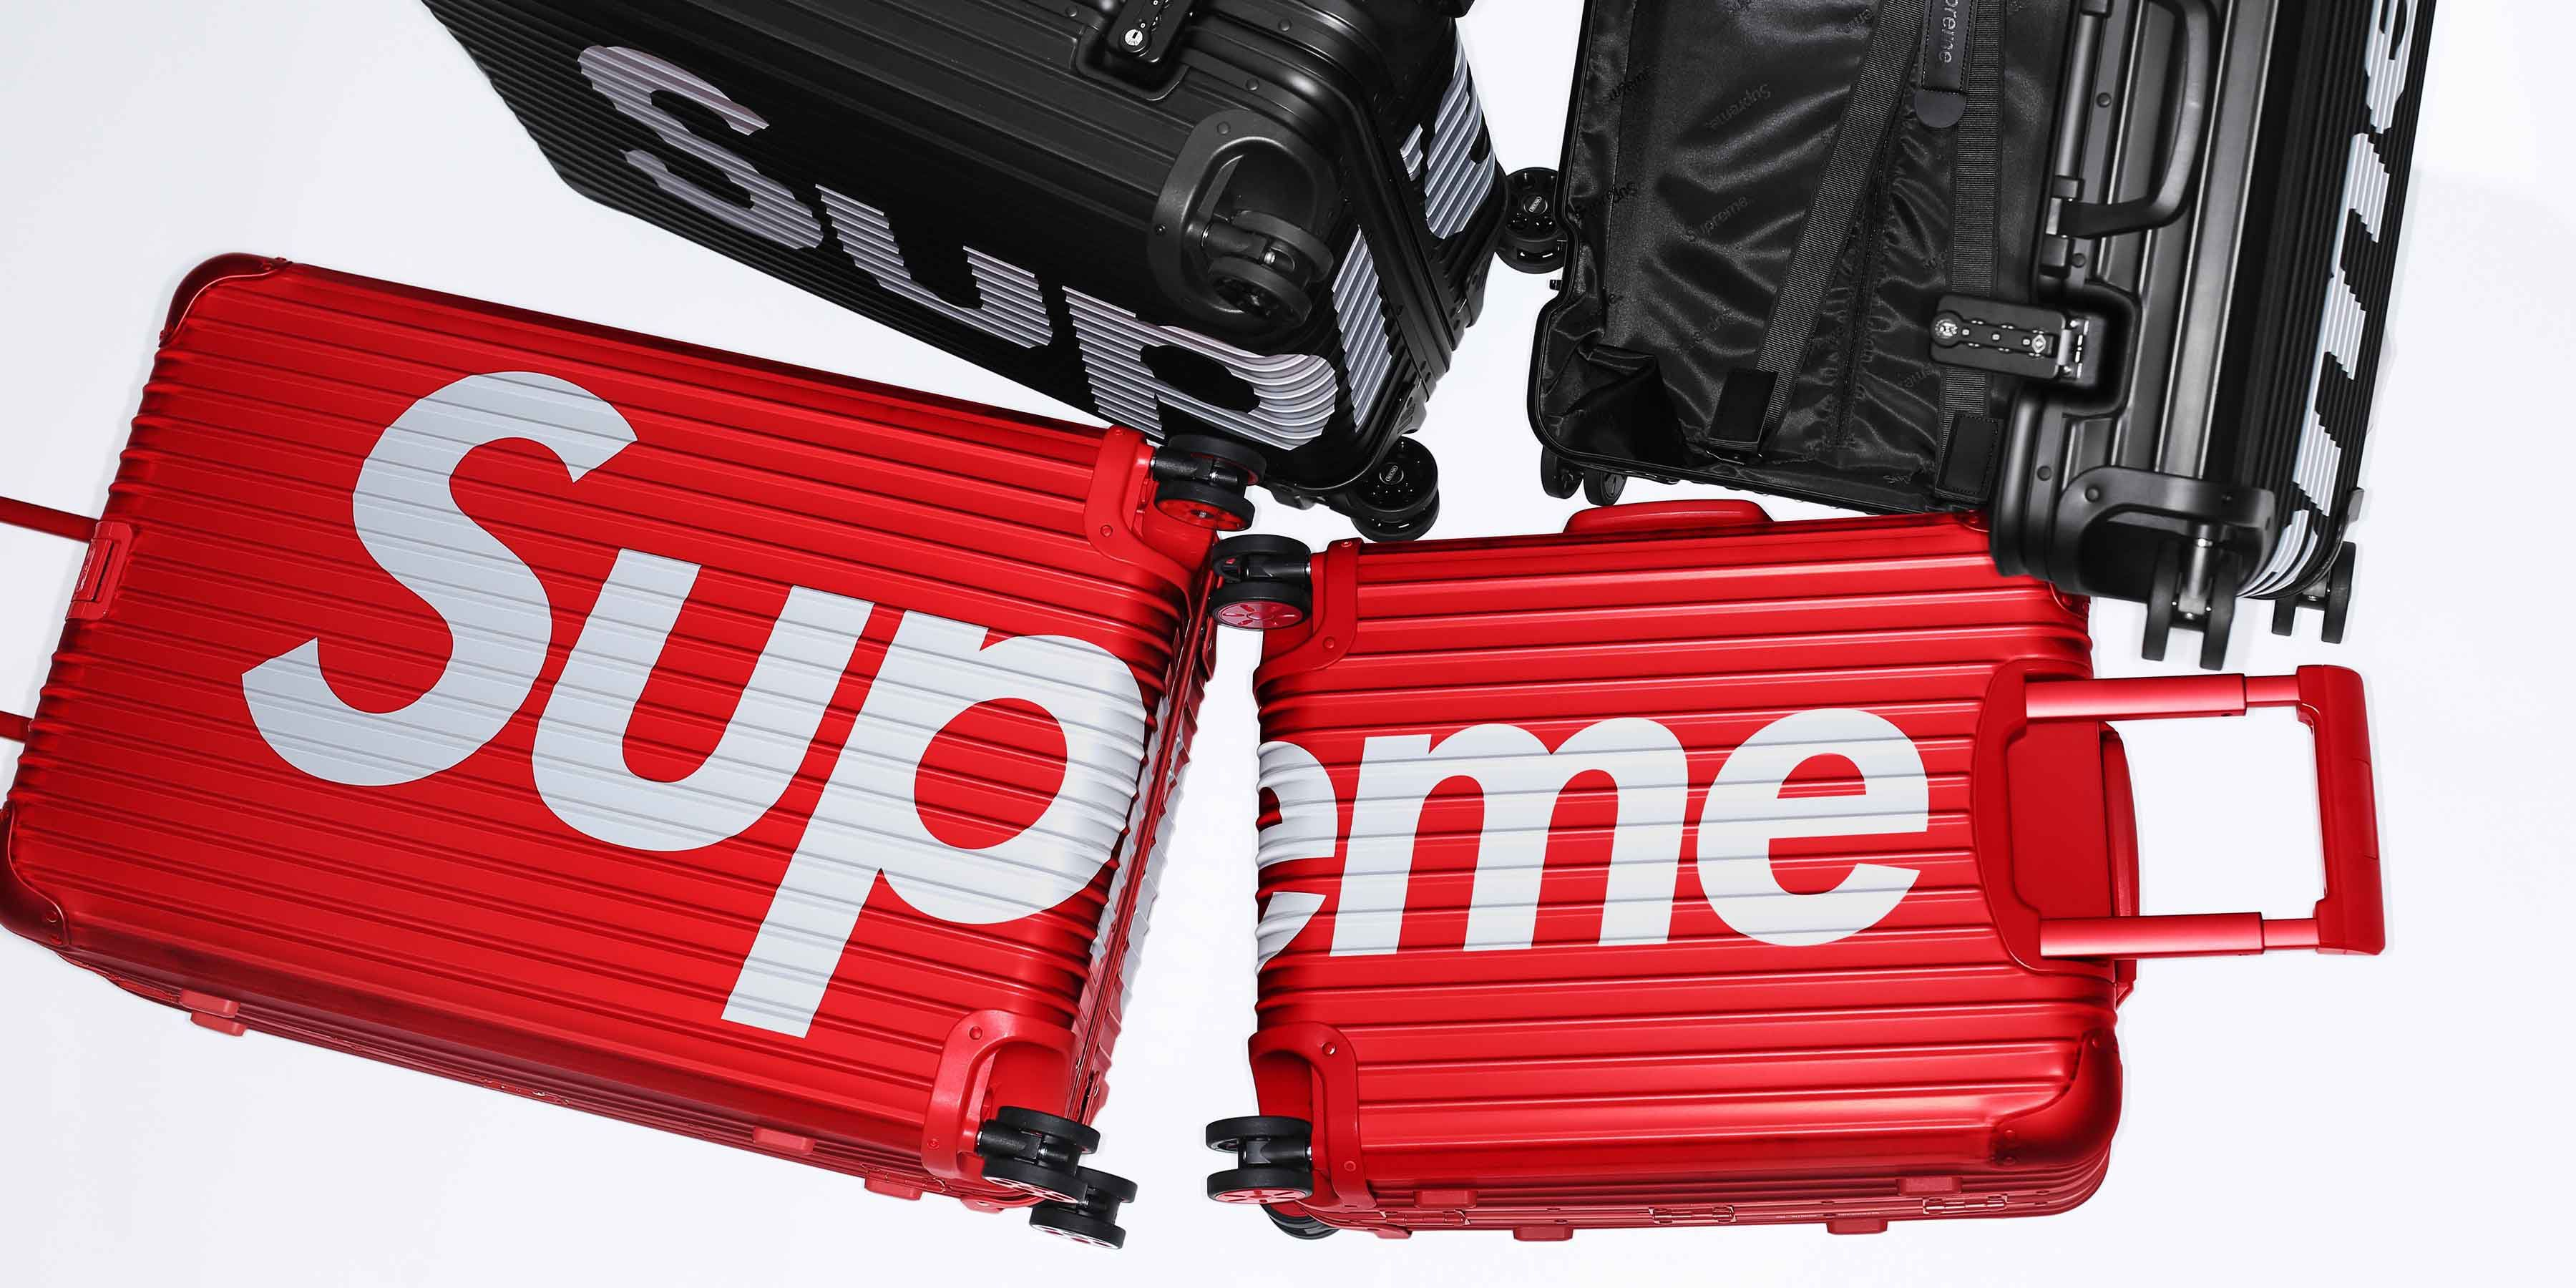 b8ade30a1 Supreme x Rimowa Is the Most Hype Luggage I've Ever Seen